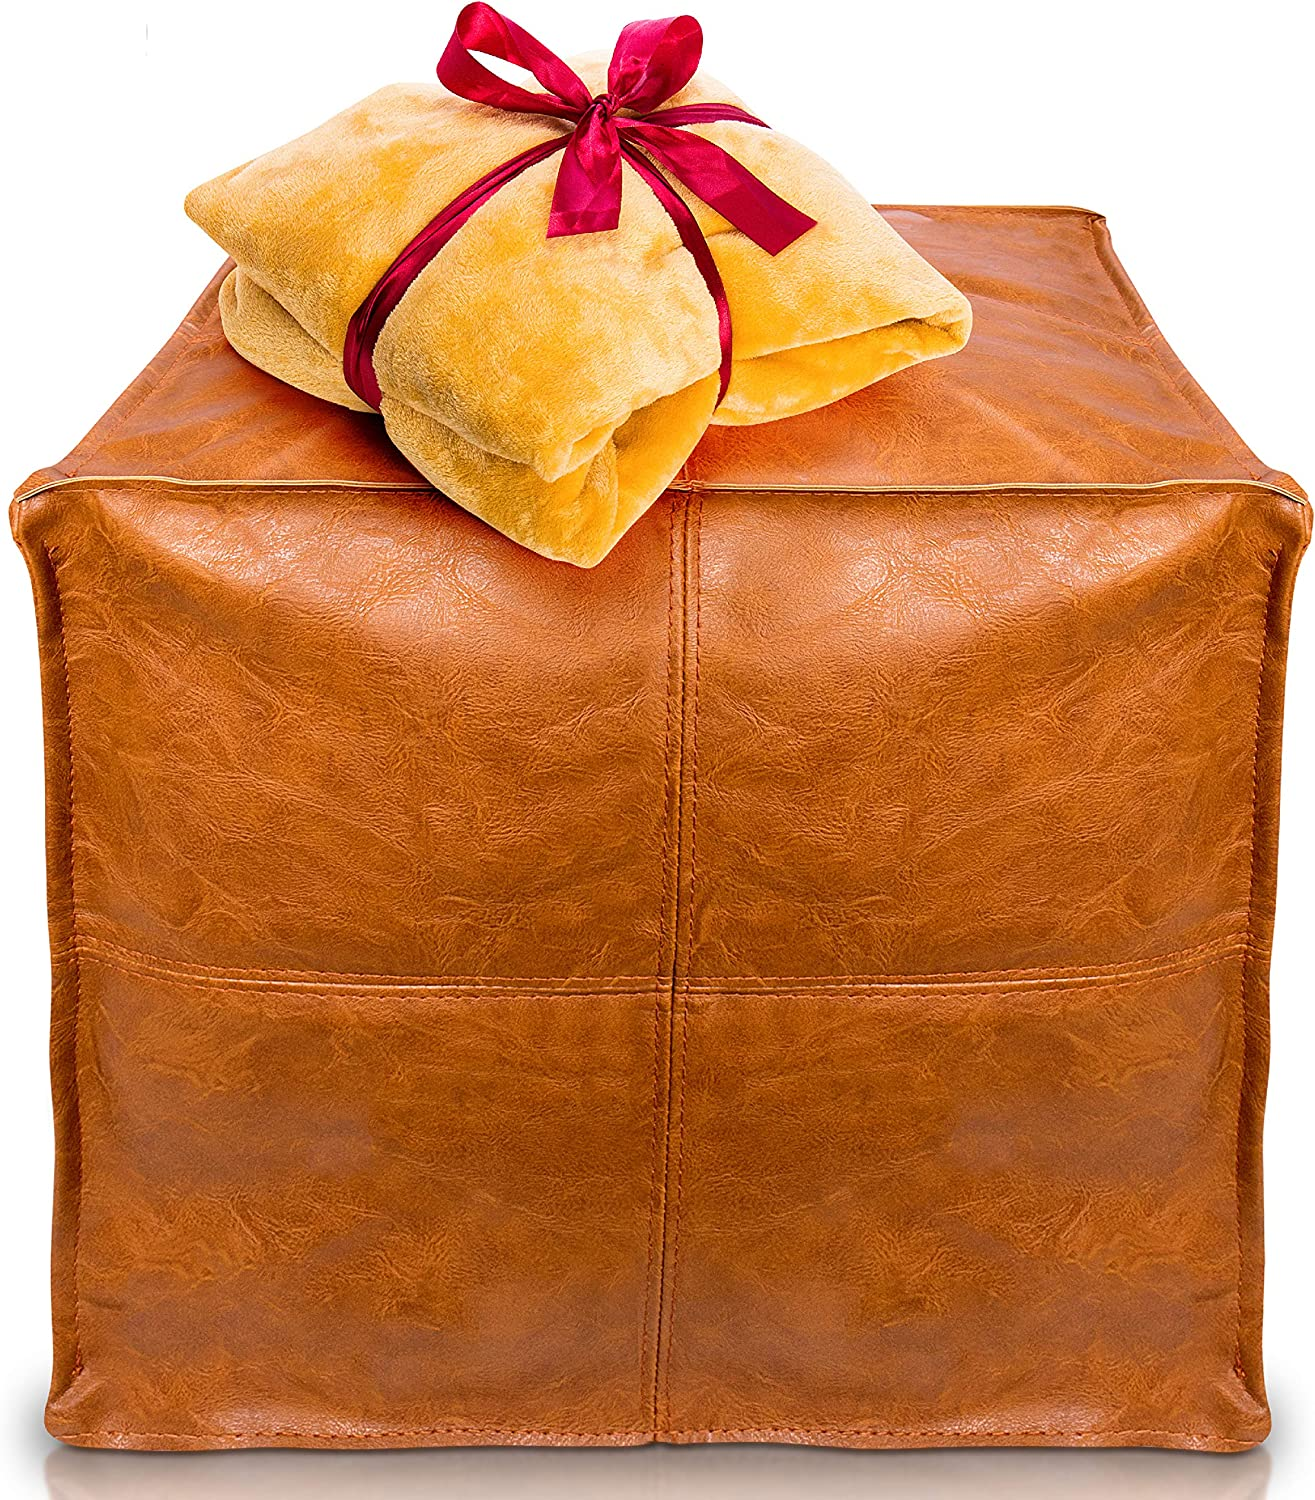 """IMMORTAR Handmade Faux Leather Moroccan Pouf Seat - Embroidered Boho Ottoman 18x18x14"""" / Living Room Bedroom TV Room/A Square and Large Hassock - Not Stuffed - (Orange Brown)"""